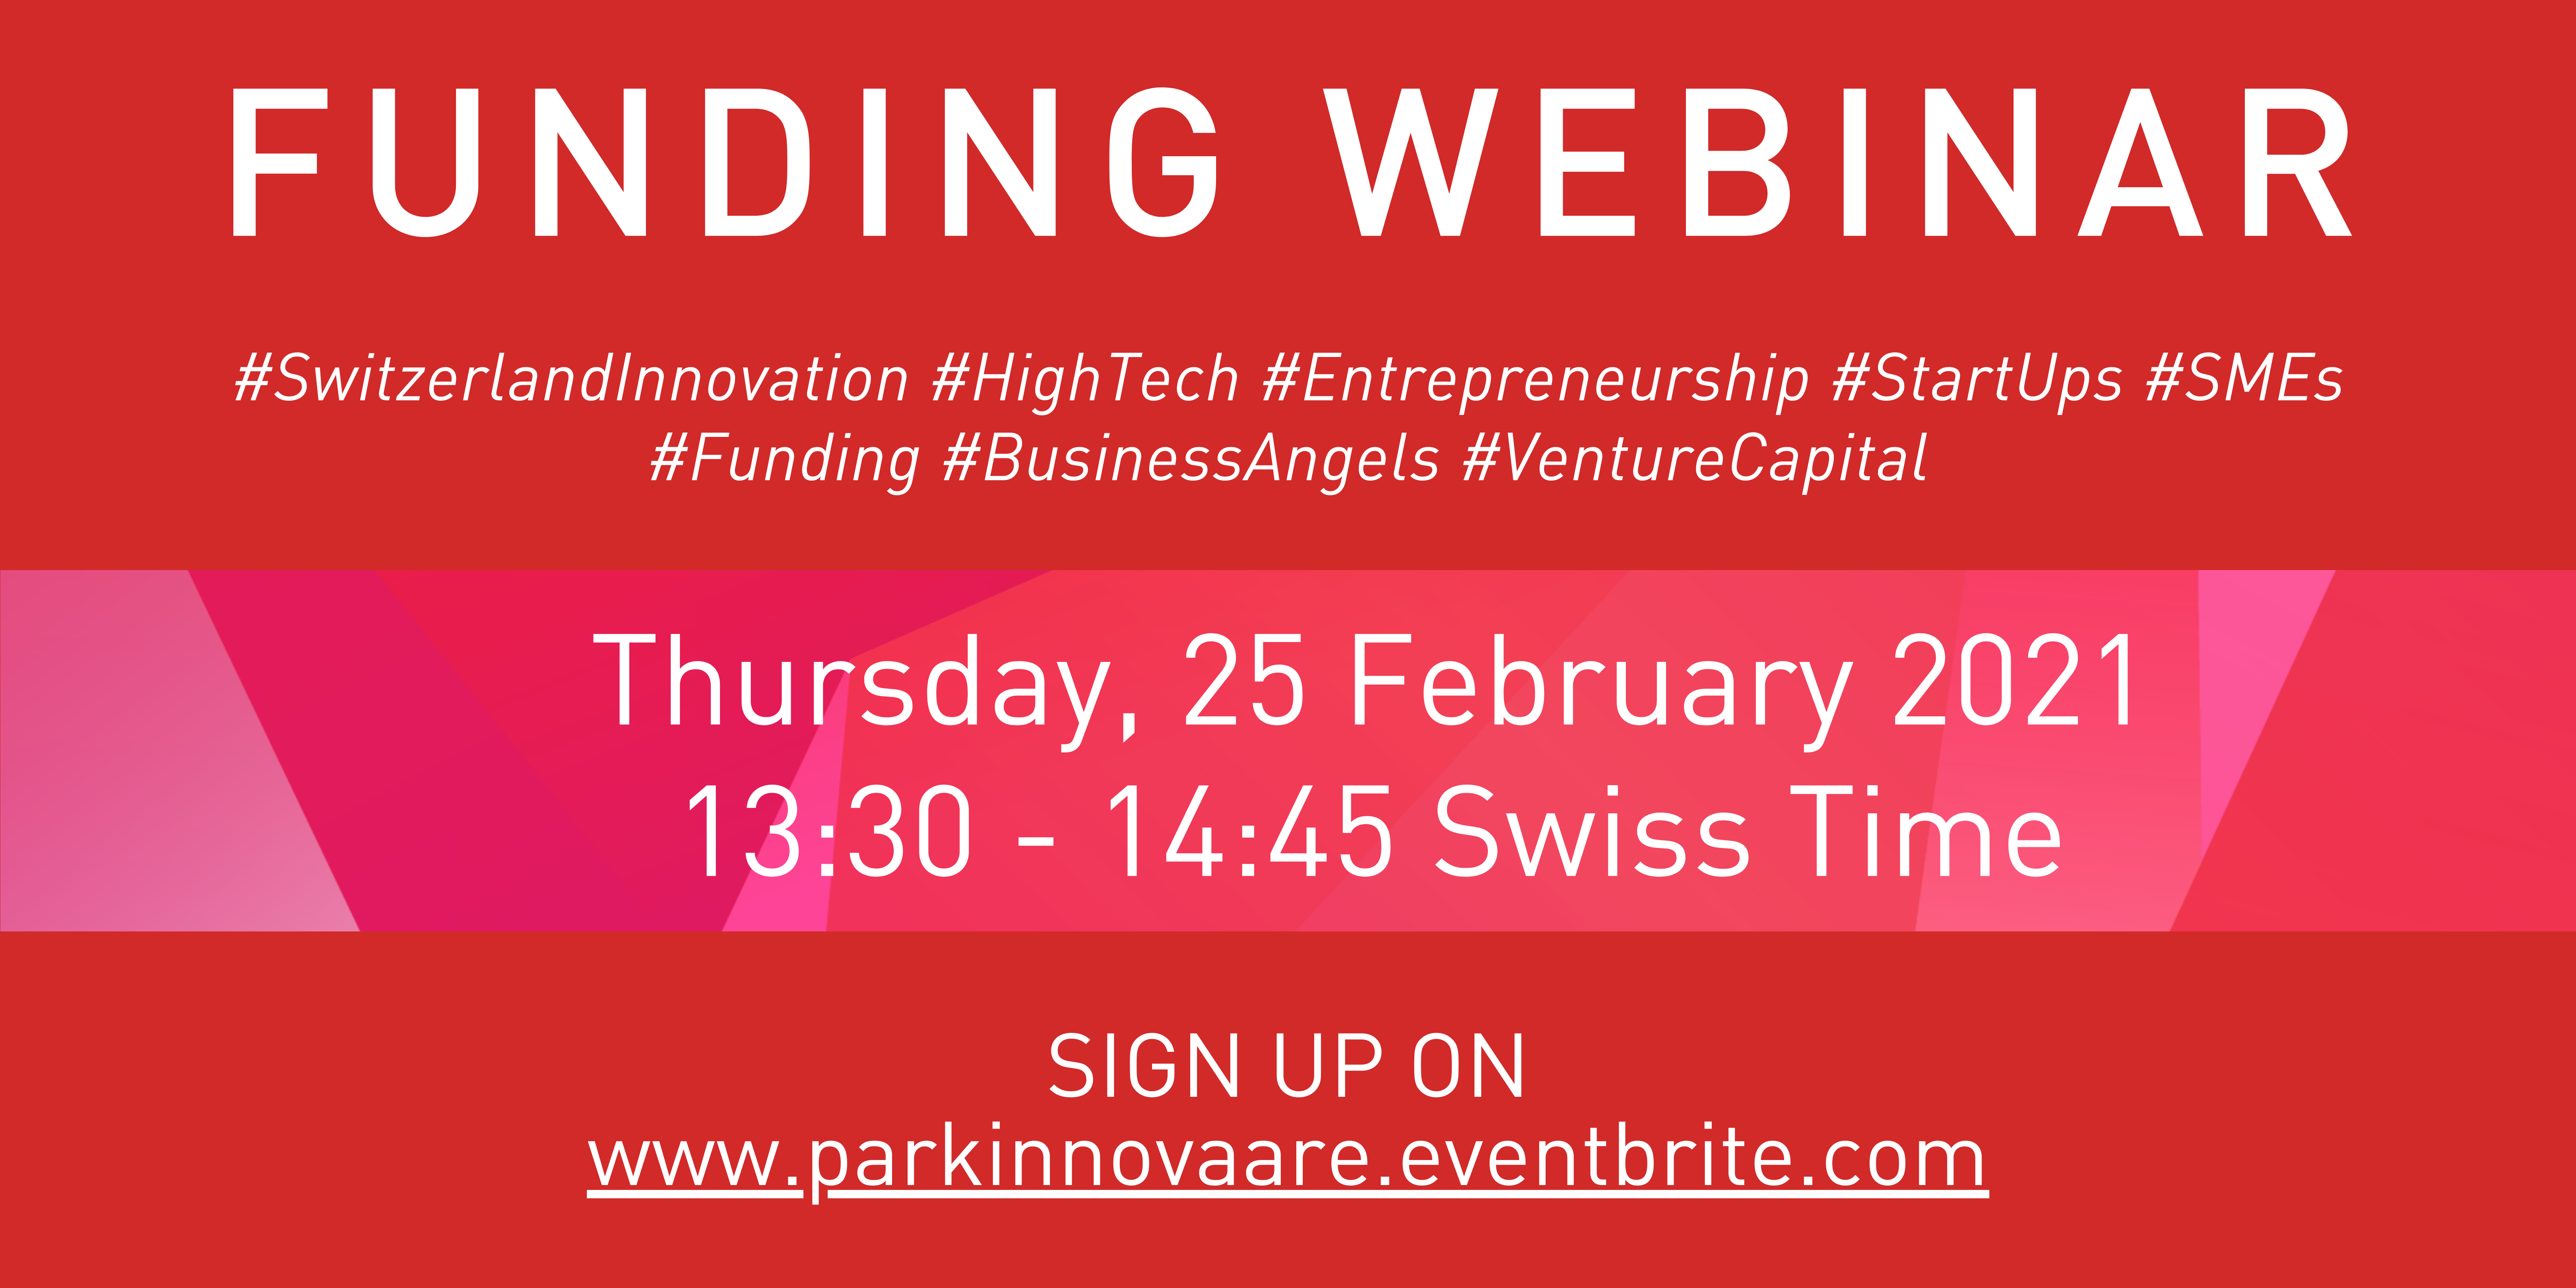 Funding Webinar for High-Tech, High-Risk & High-Potential Start-Ups & SMEs